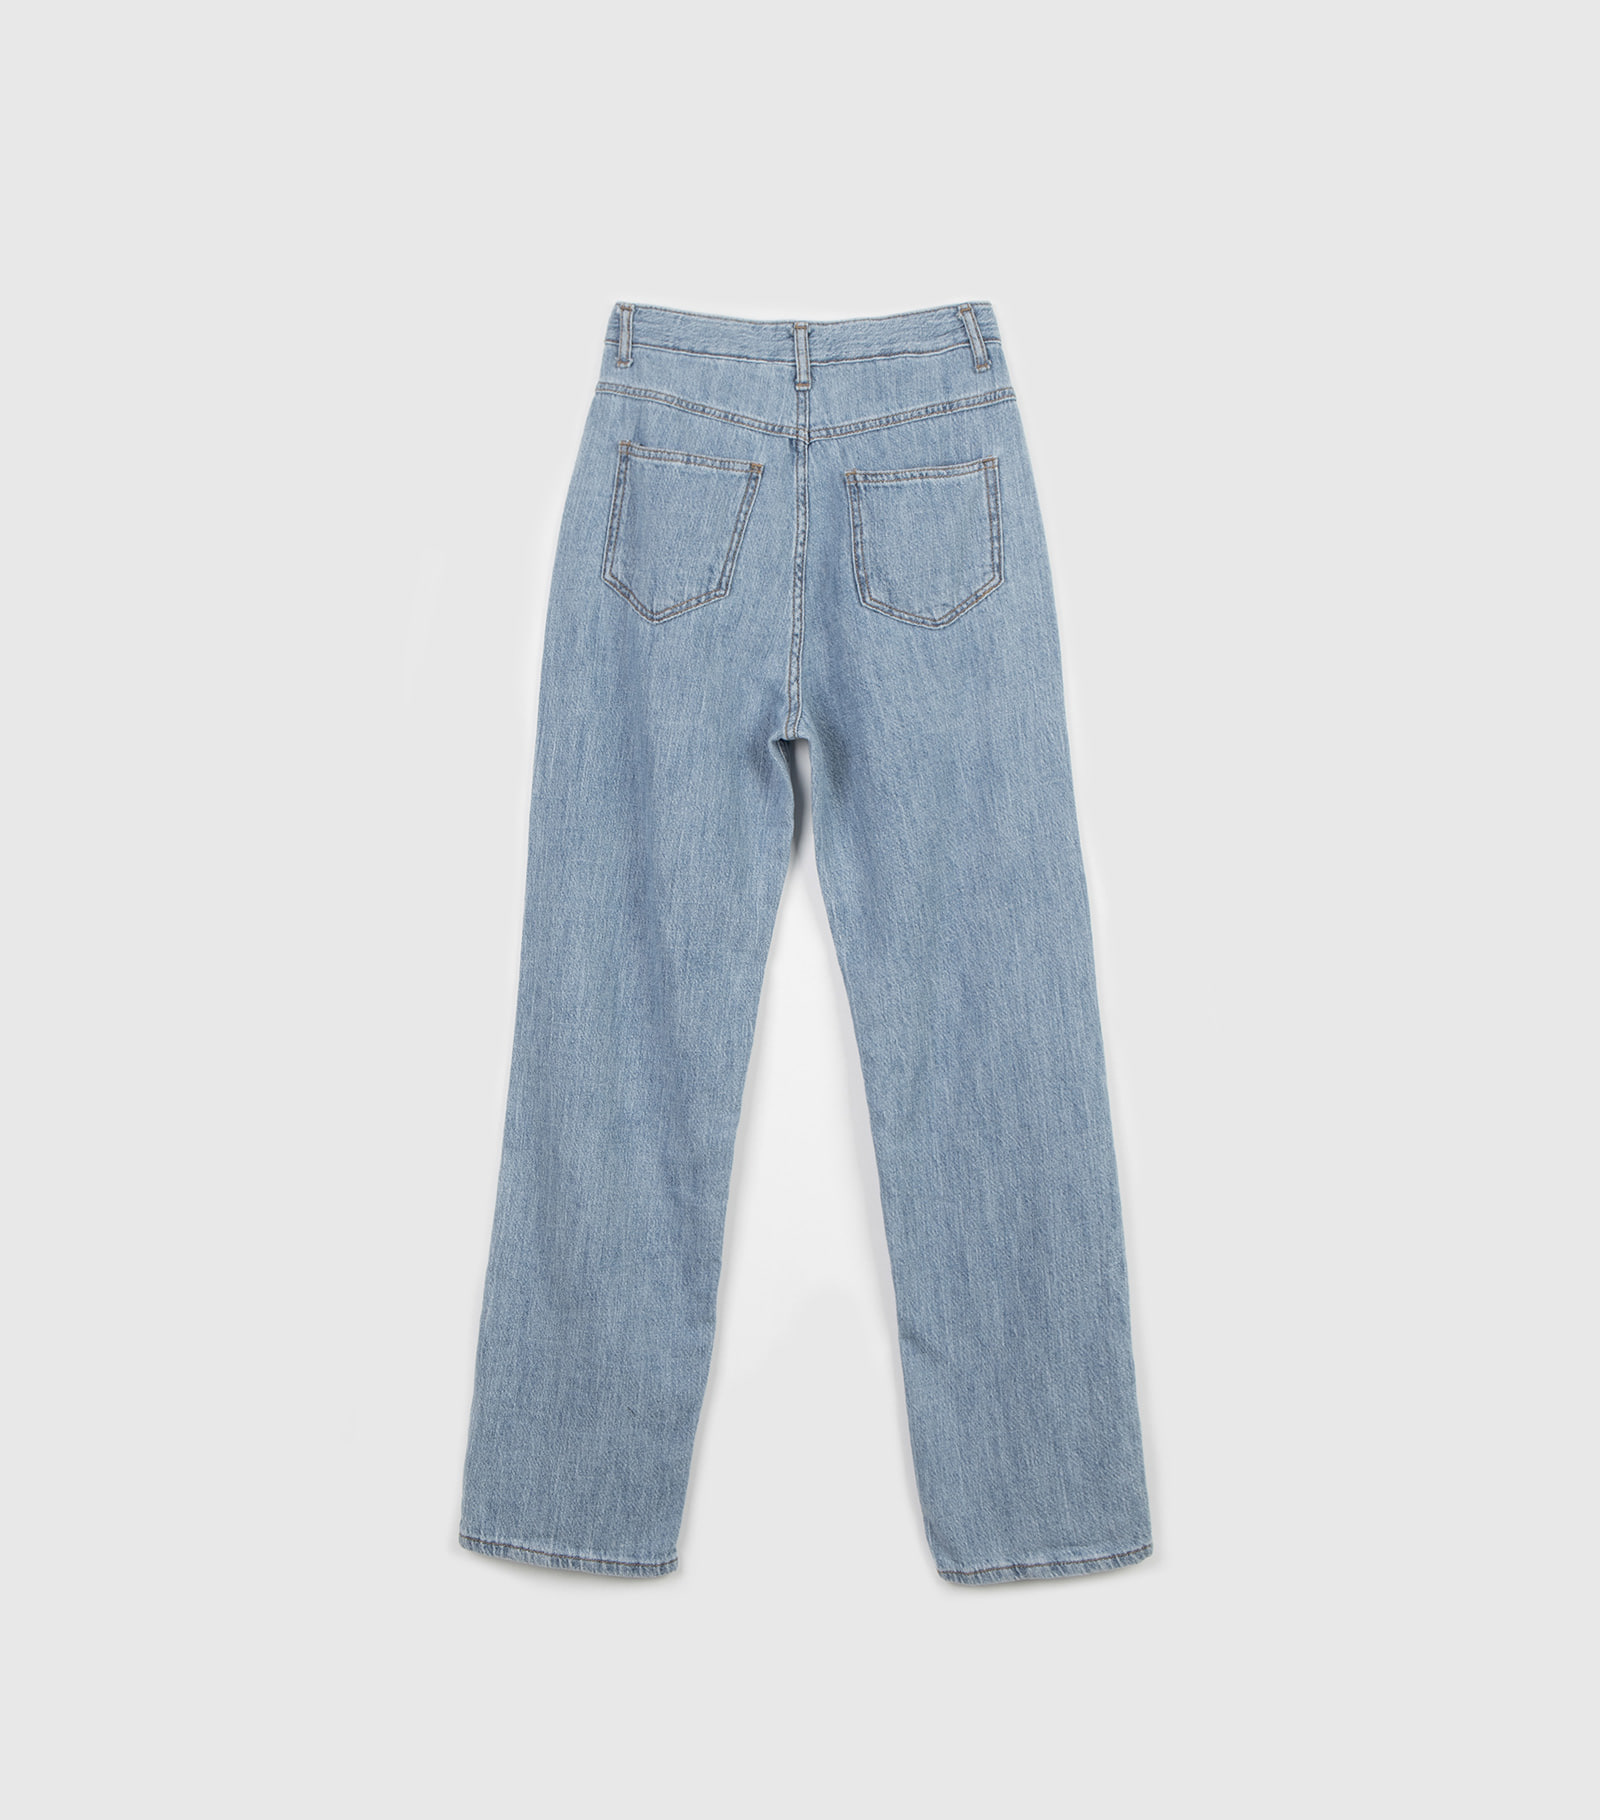 Rouge high waist wide jeans